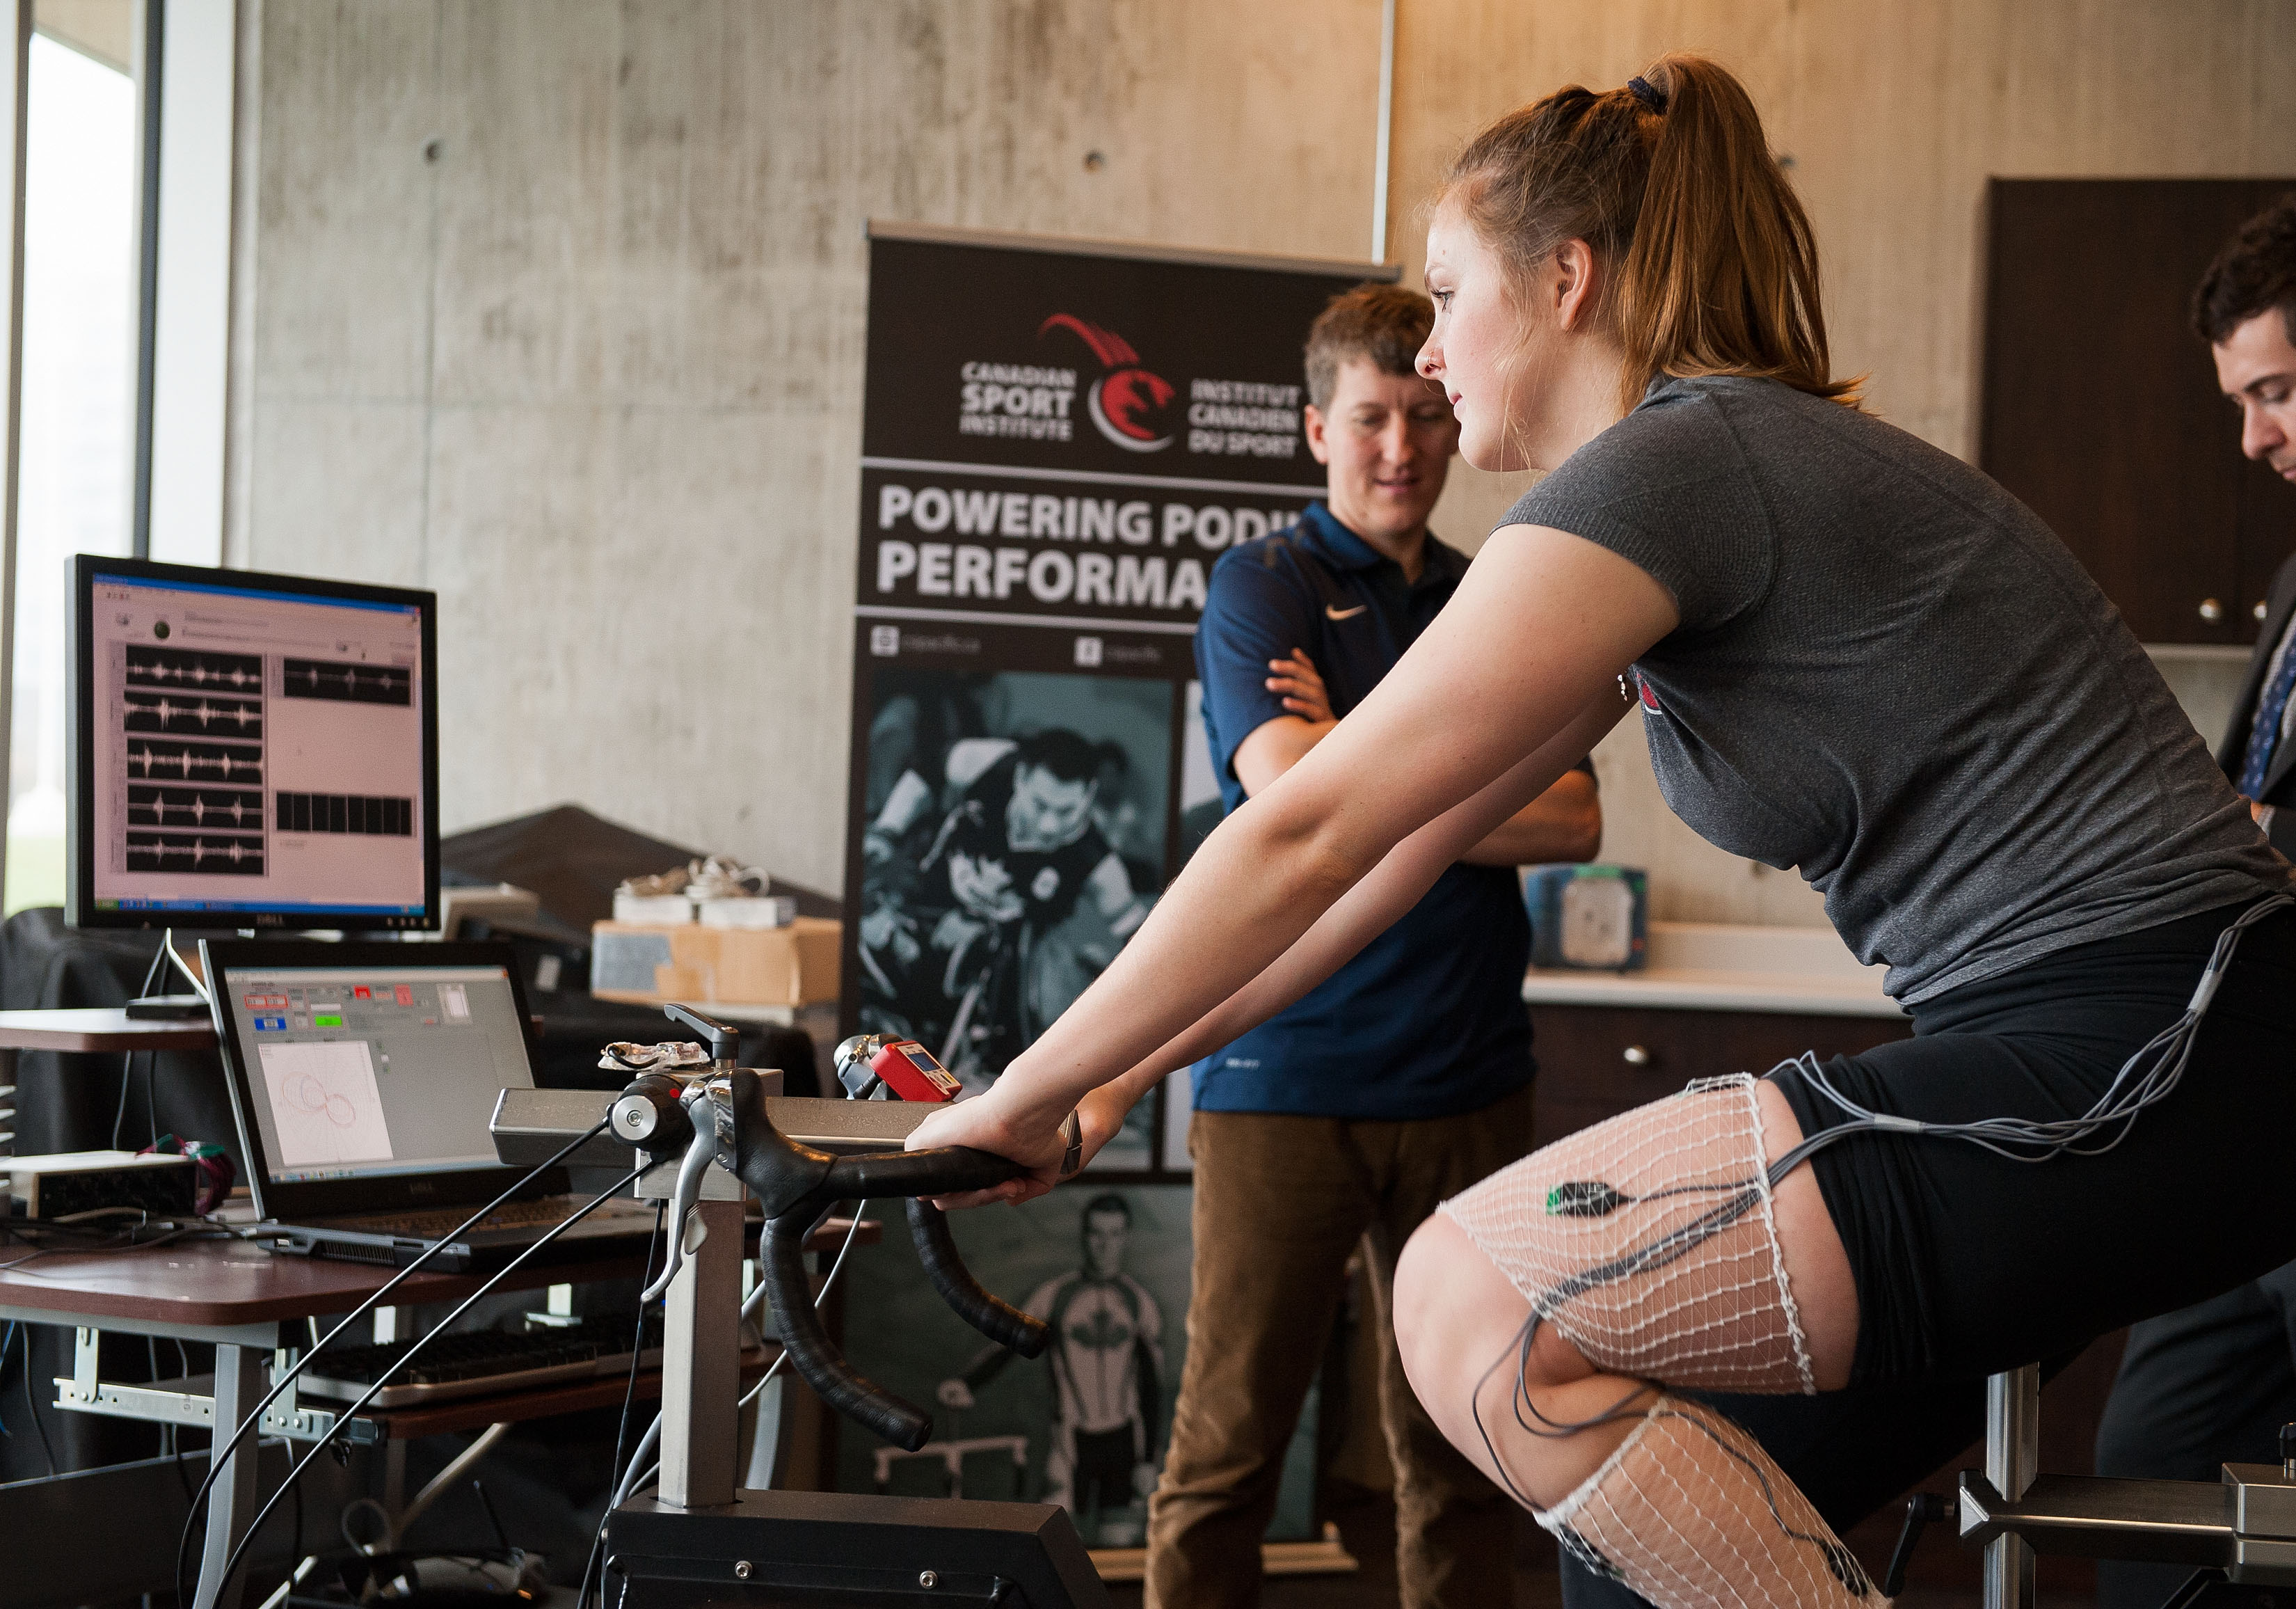 Researcher Matt Jesnen of the Canadian Olympic and Paralympic Sport Institute Network, watches colleague Monica McKeown demonstrate the first bike to measure the neuromechanical (NM) and physiological measurement techniques of high performance athletes at their lab on January 7, 2015.